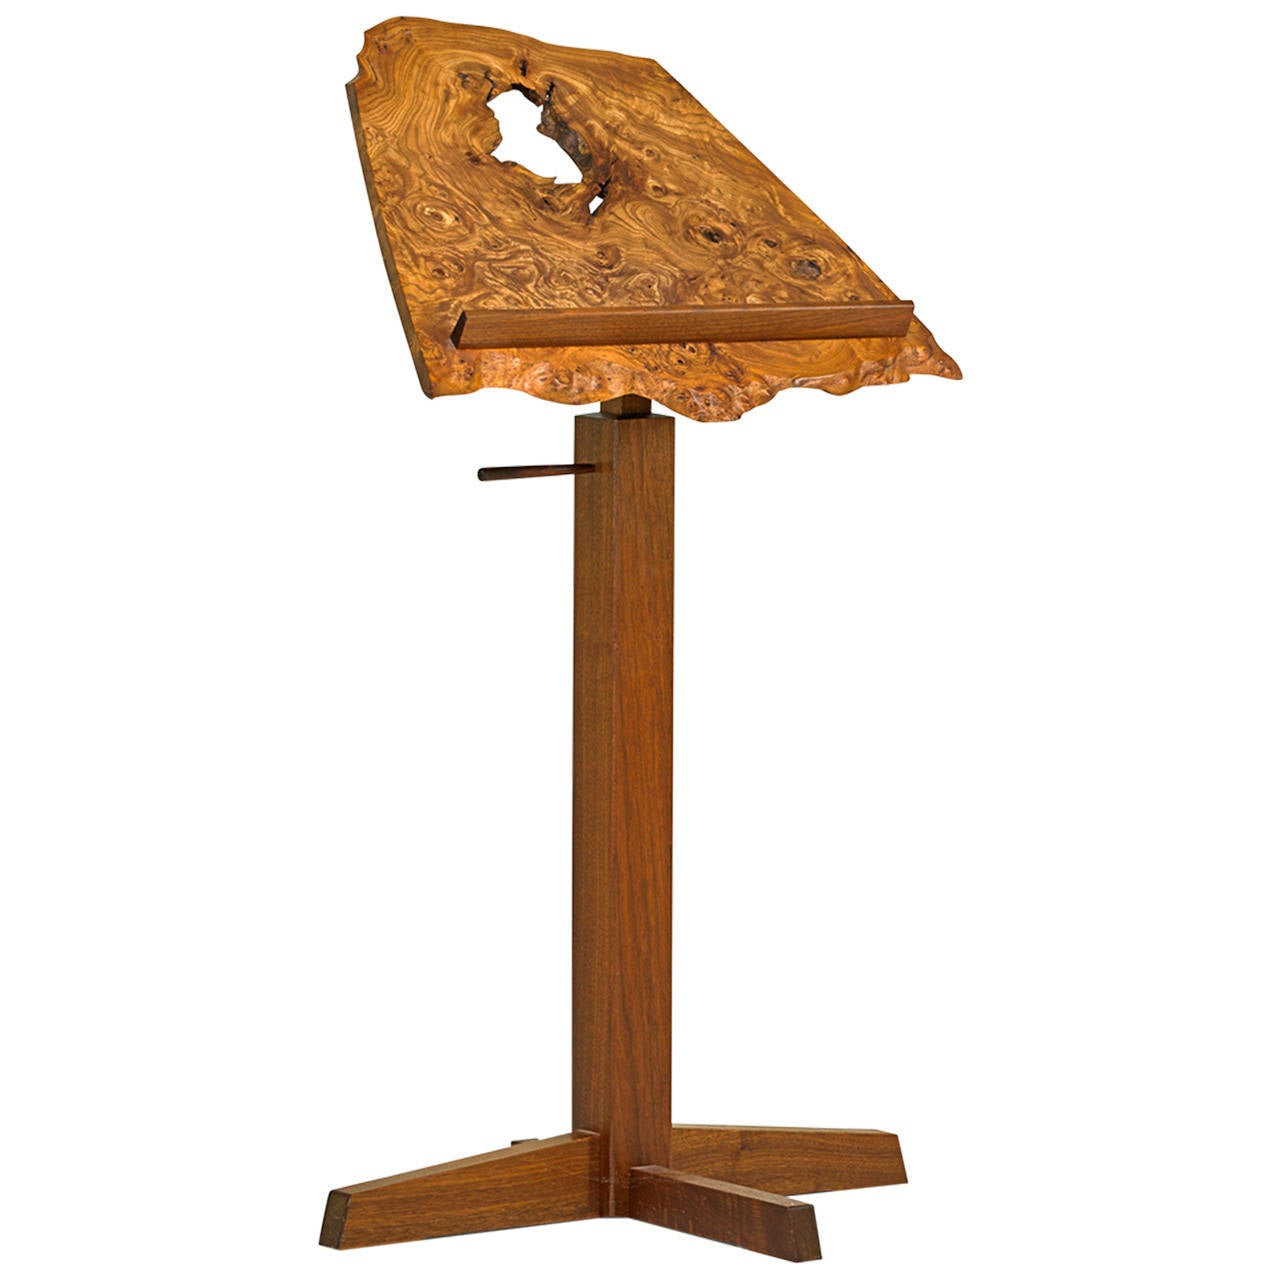 George Nakashima Adjustable Music Stand in Burl, Elm & Walnut, USA 1980 In Good Condition For Sale In New York, NY